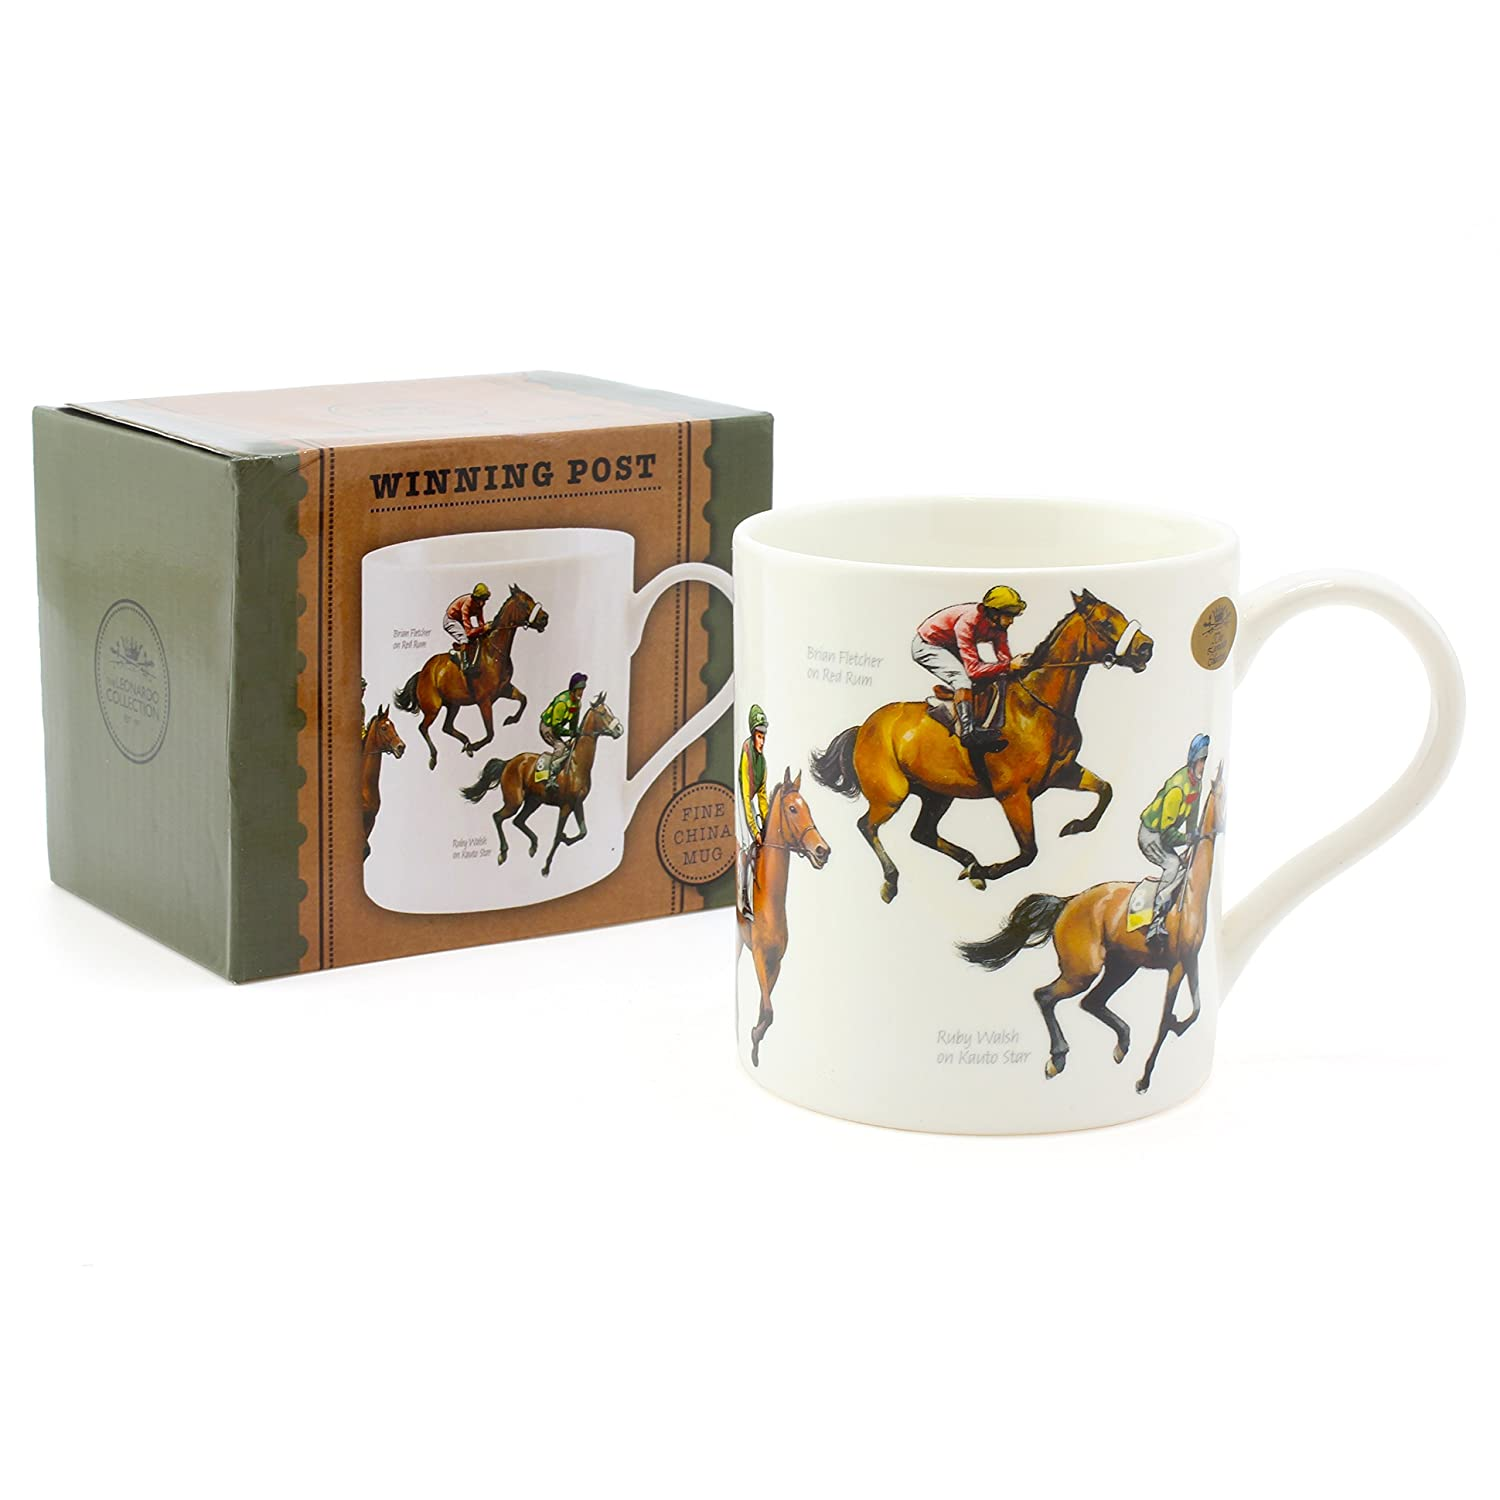 Famous Horses /& Jockeys Perfect Cup for Fans of Horse Racing The Leonardo Collection Winning Post Fine China Windsor Mug Horse Racing Design